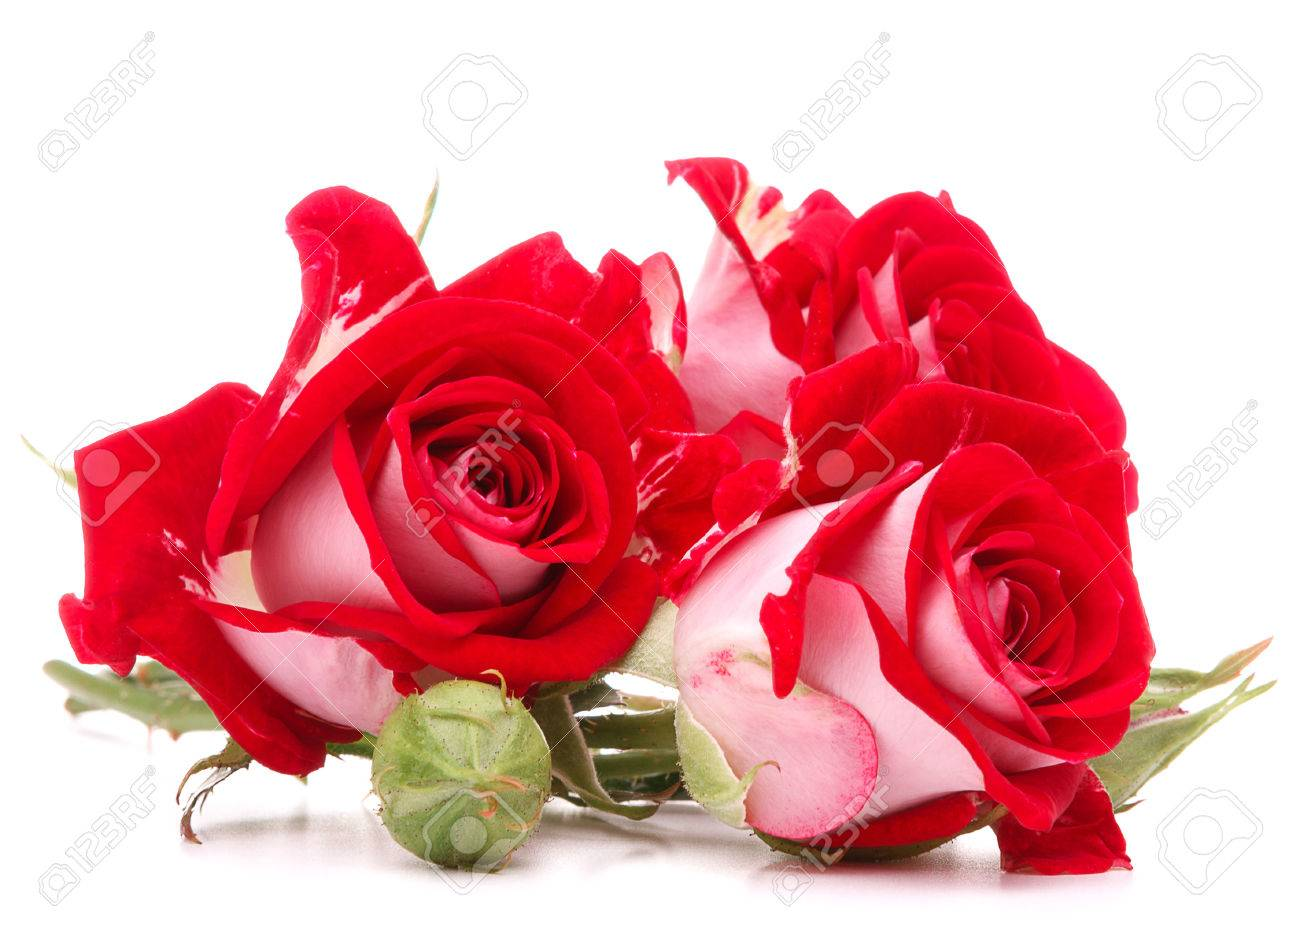 Red rose flower bouquet isolated on white background cutout stock red rose flower bouquet isolated on white background cutout stock photo 26105339 izmirmasajfo